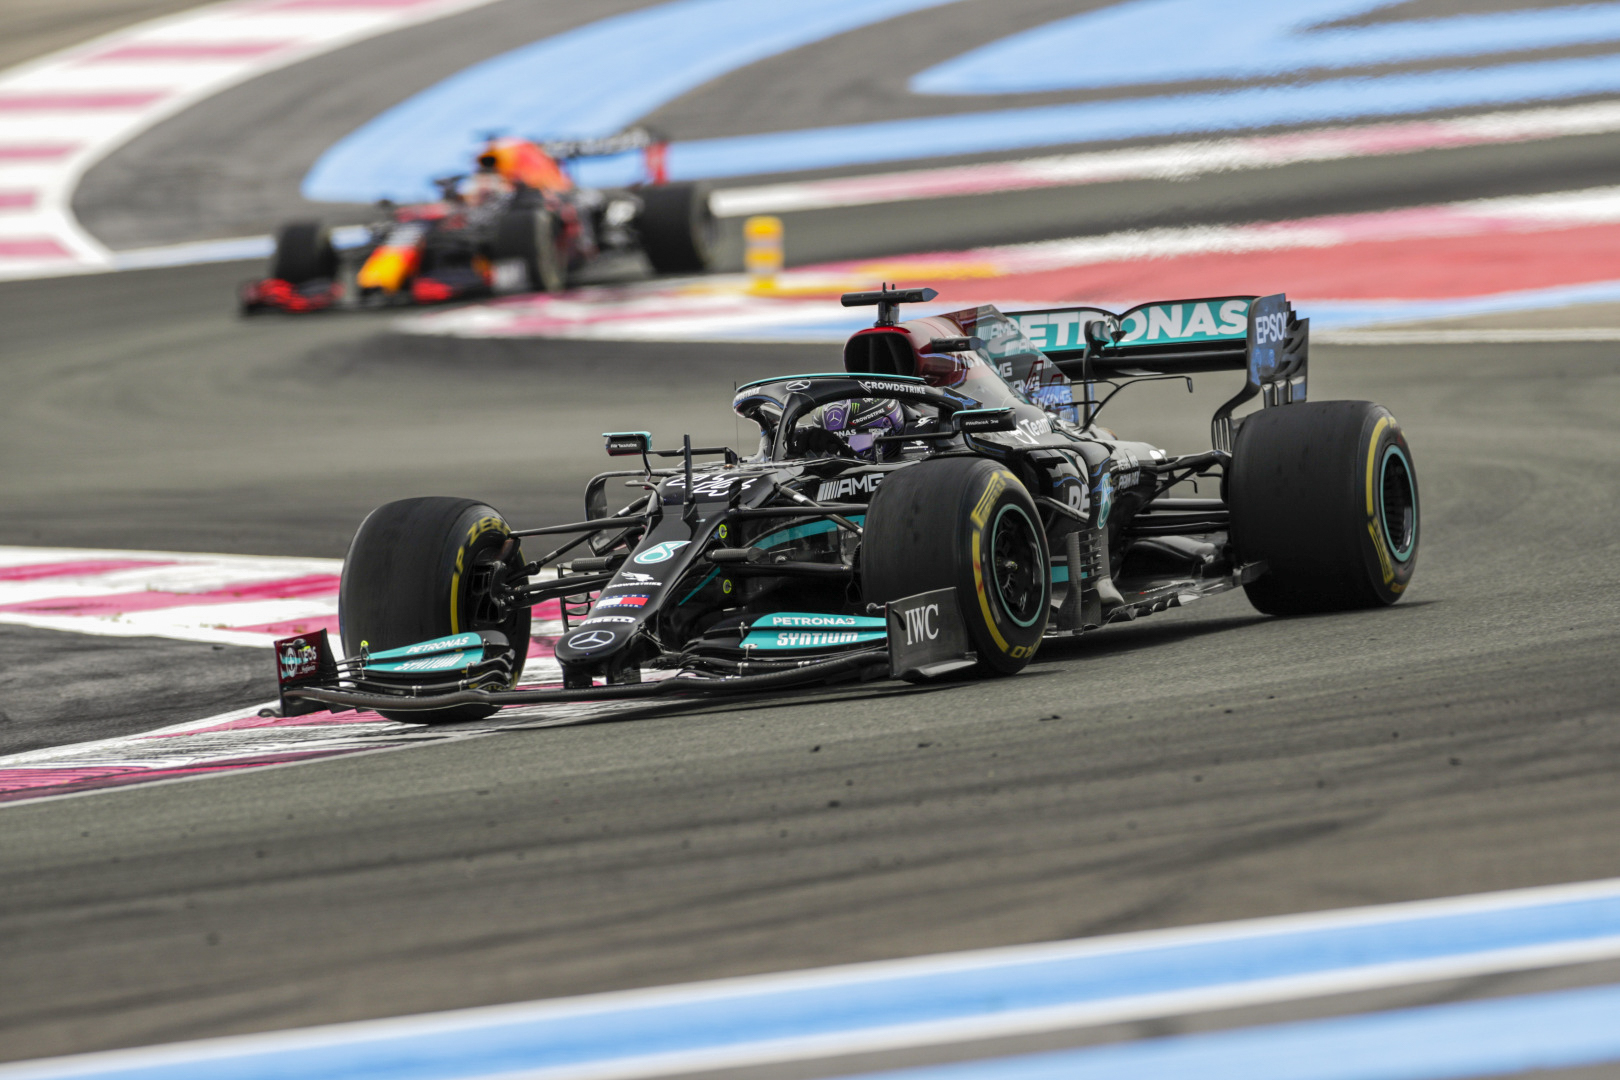 Lewis takes P2 and Valtteri P4 for the Mercedes-AMG Petronas F1 Team at the 2021 French Grand Prix